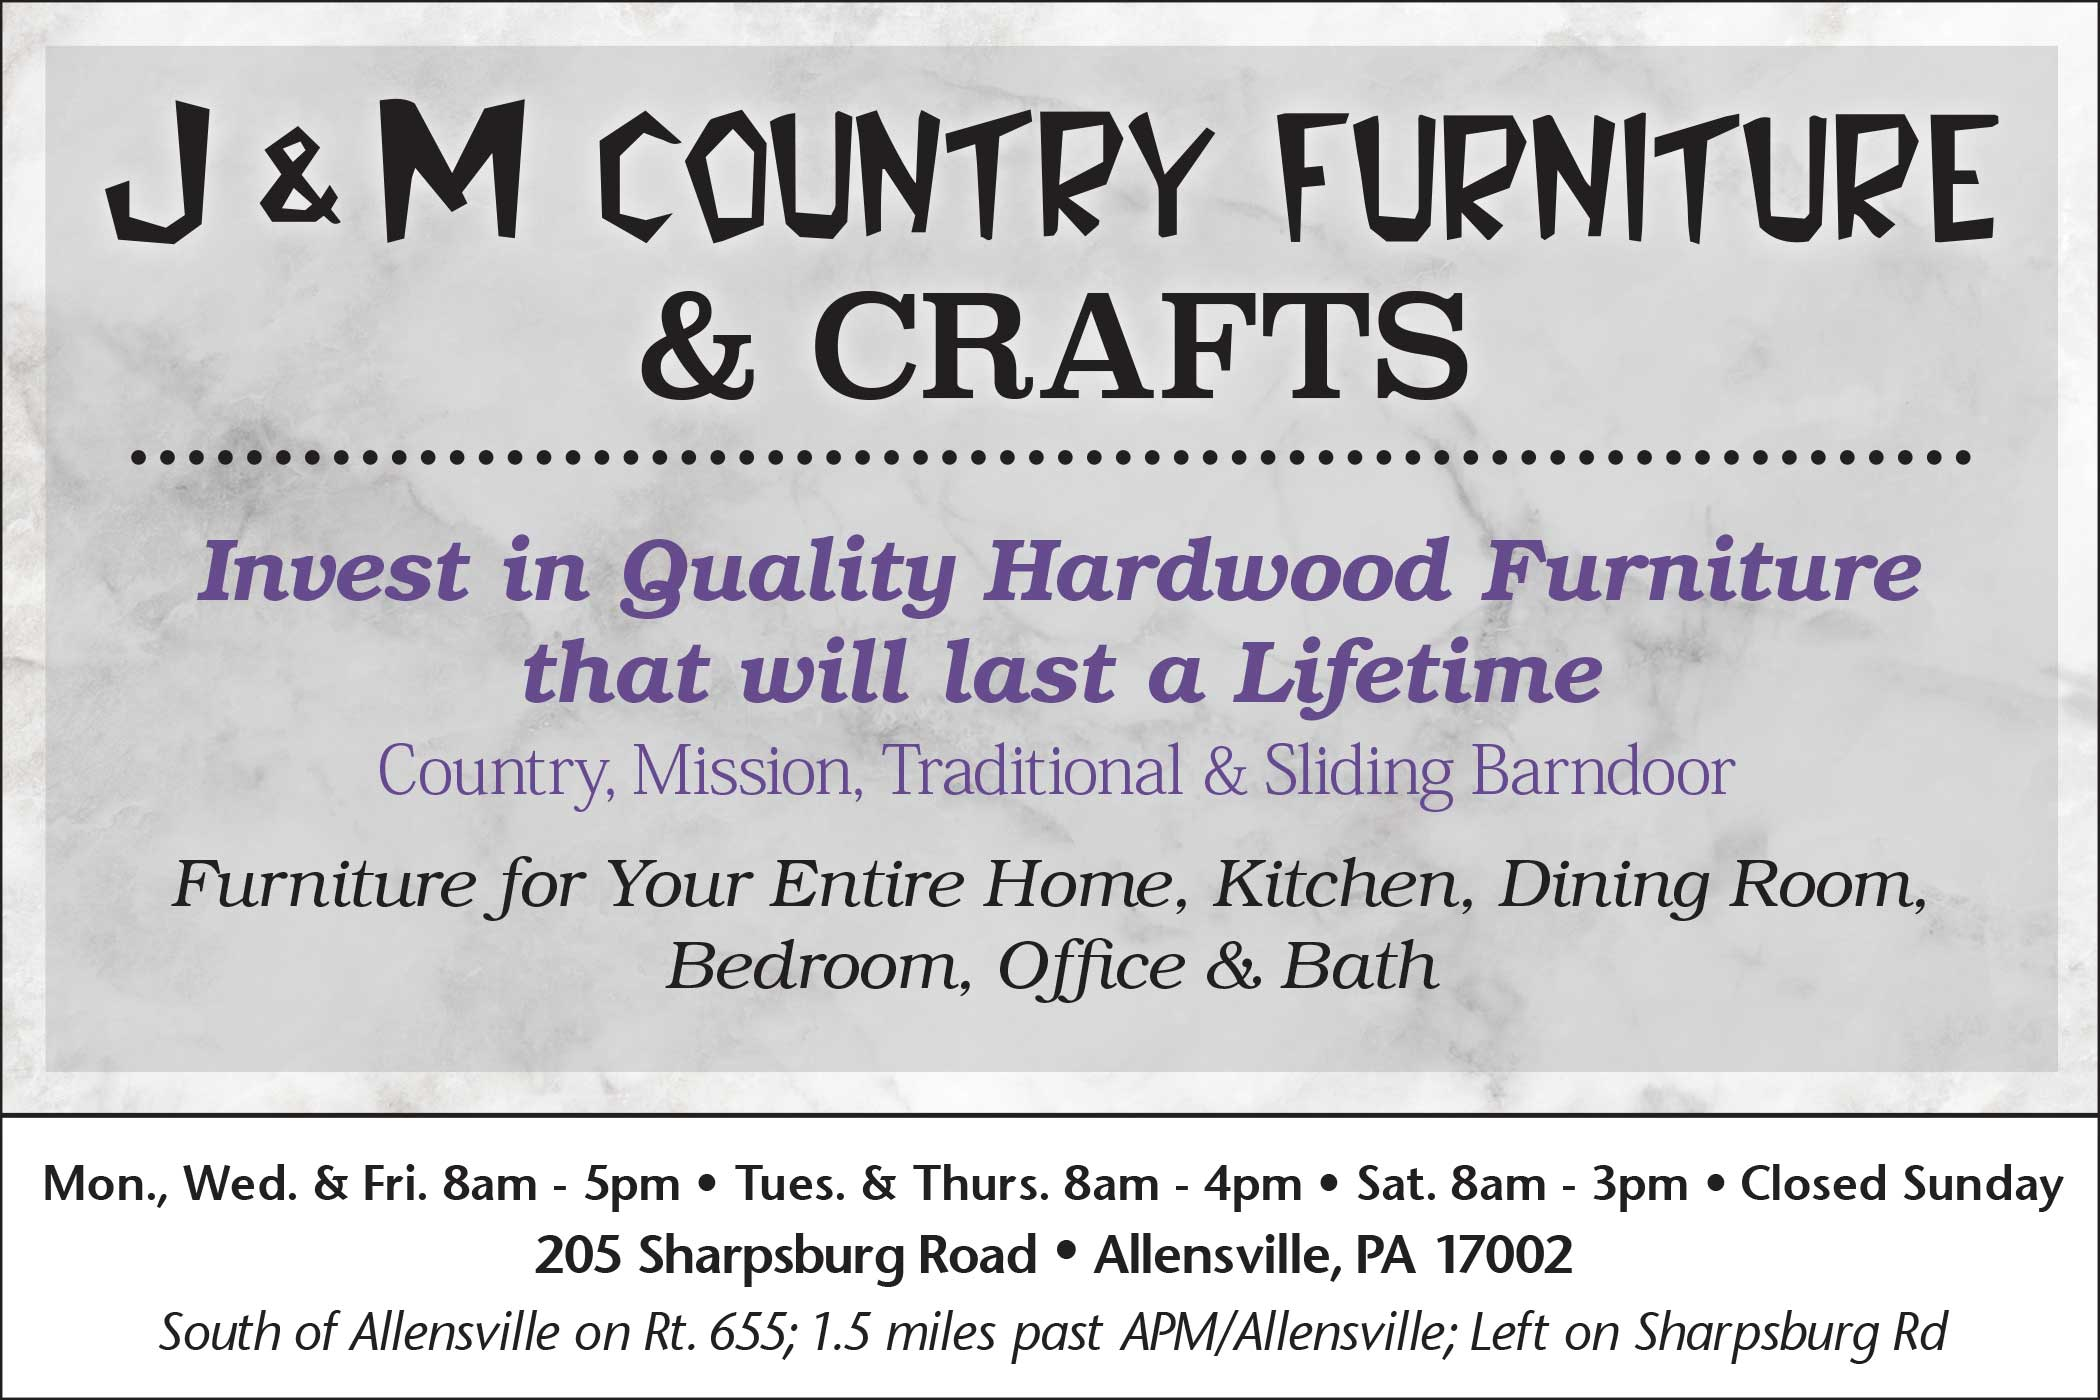 <center>J&M Country Furniture & Crafts</center>